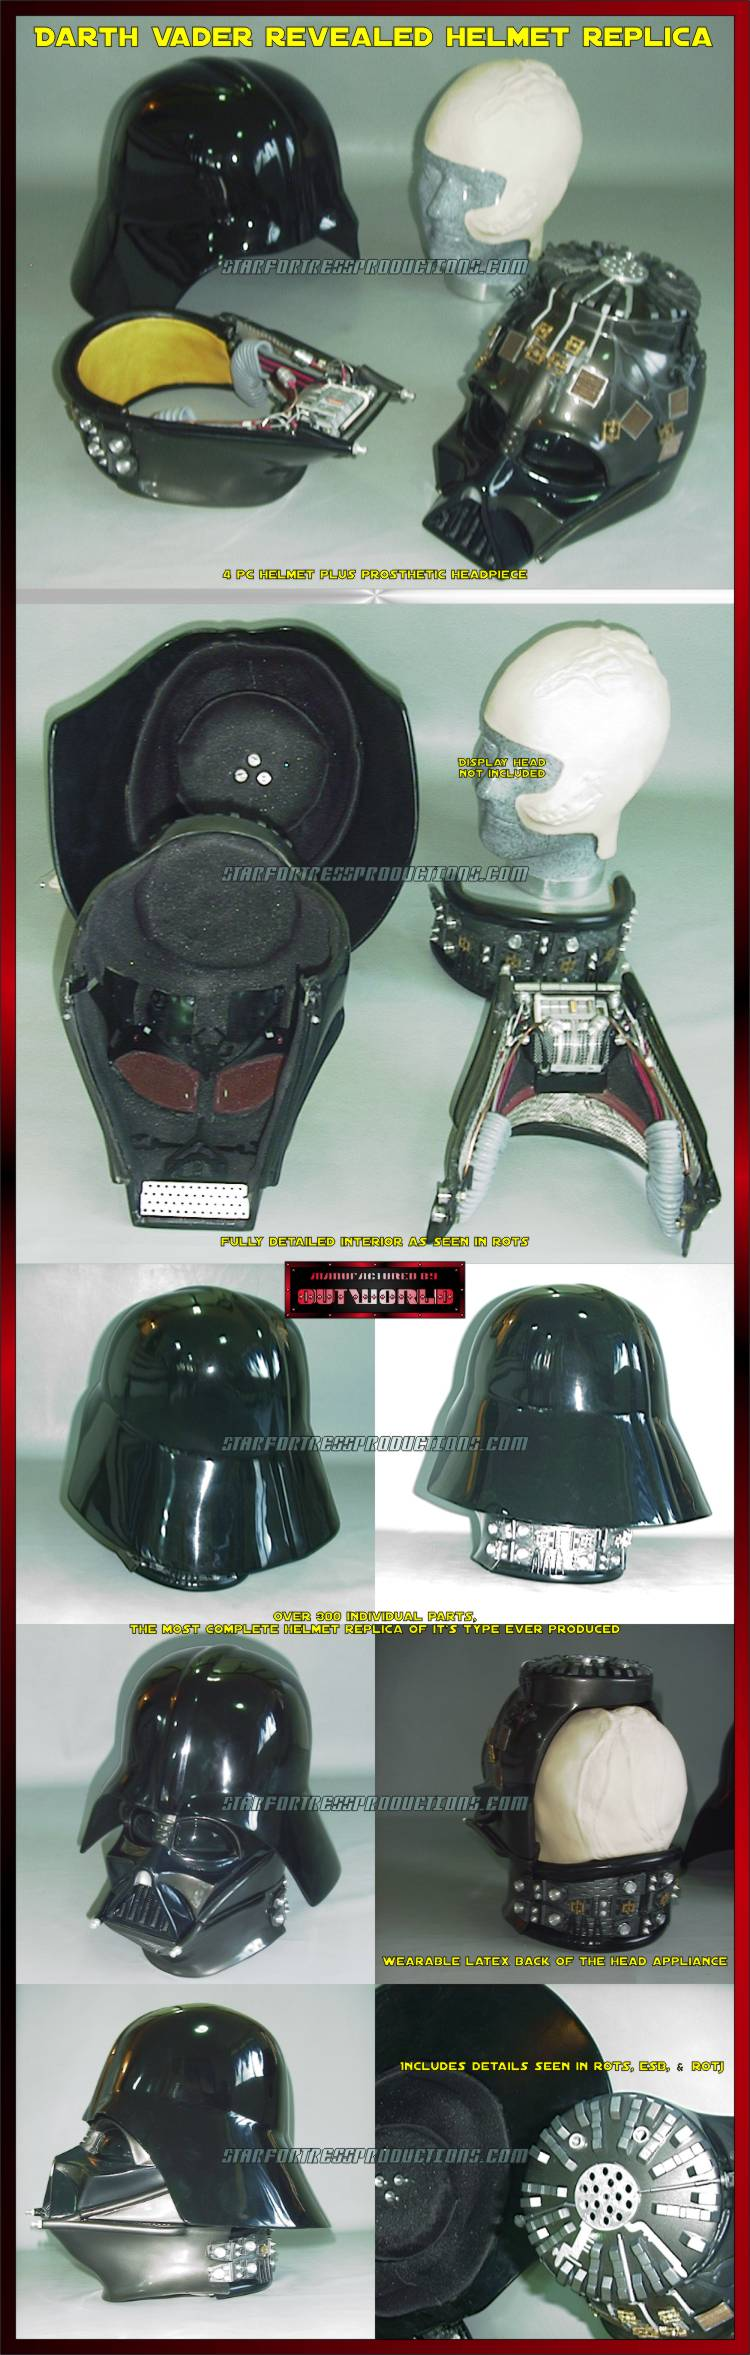 darth-vader-helmet-revealed